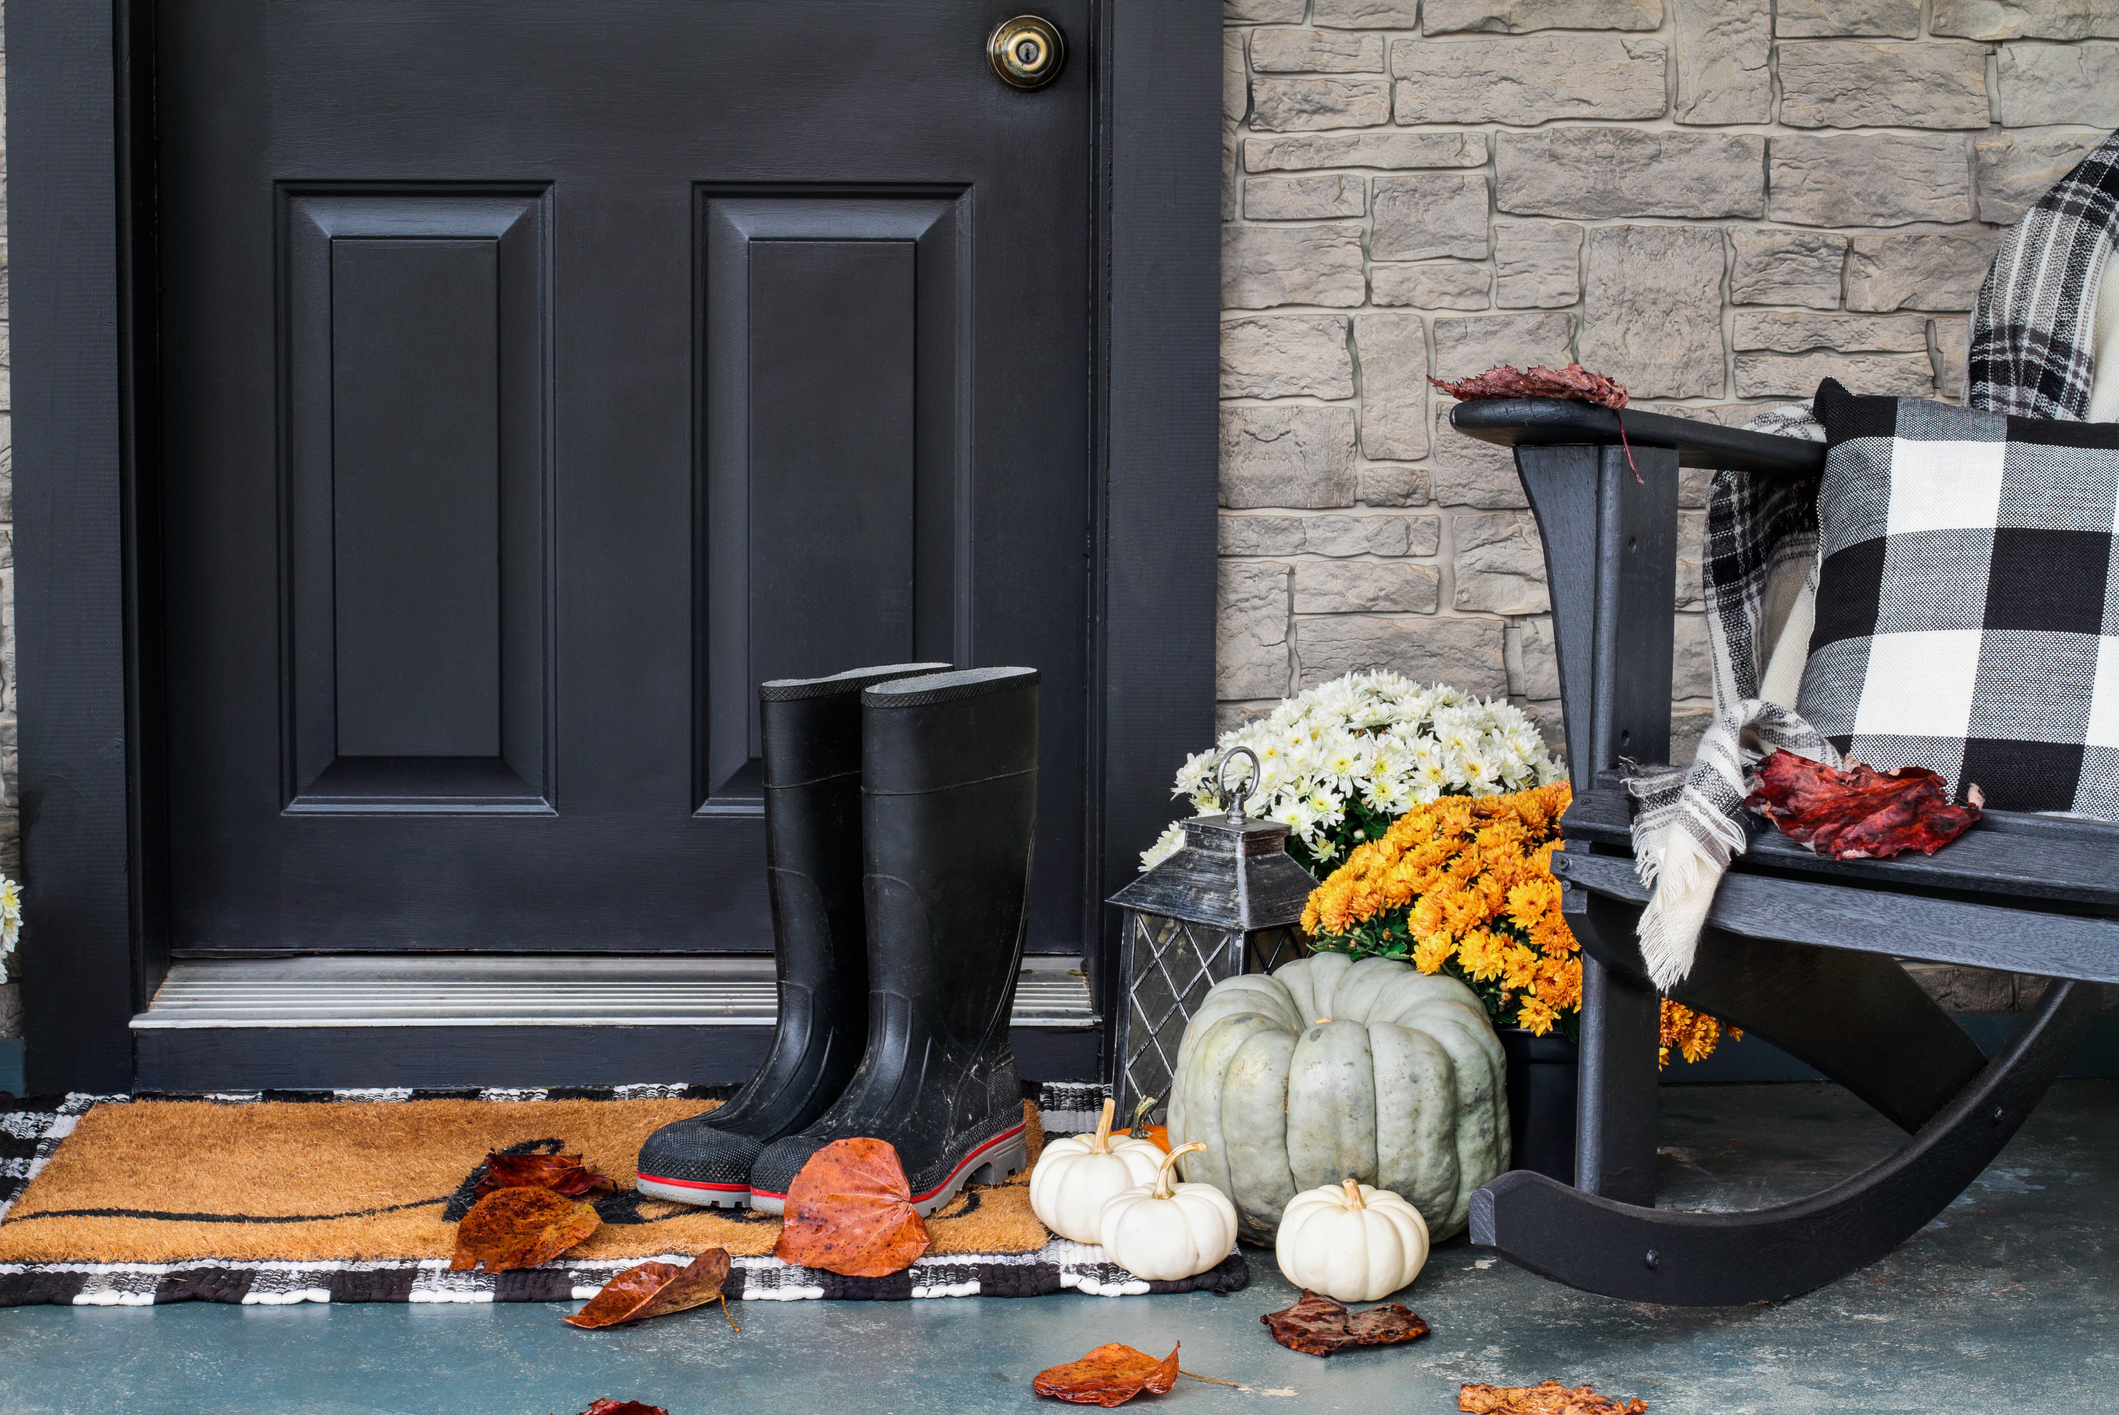 ALAN'S FALL 2020 HOMEOWNER'S NEWSLETTER | HELPFUL HINTS